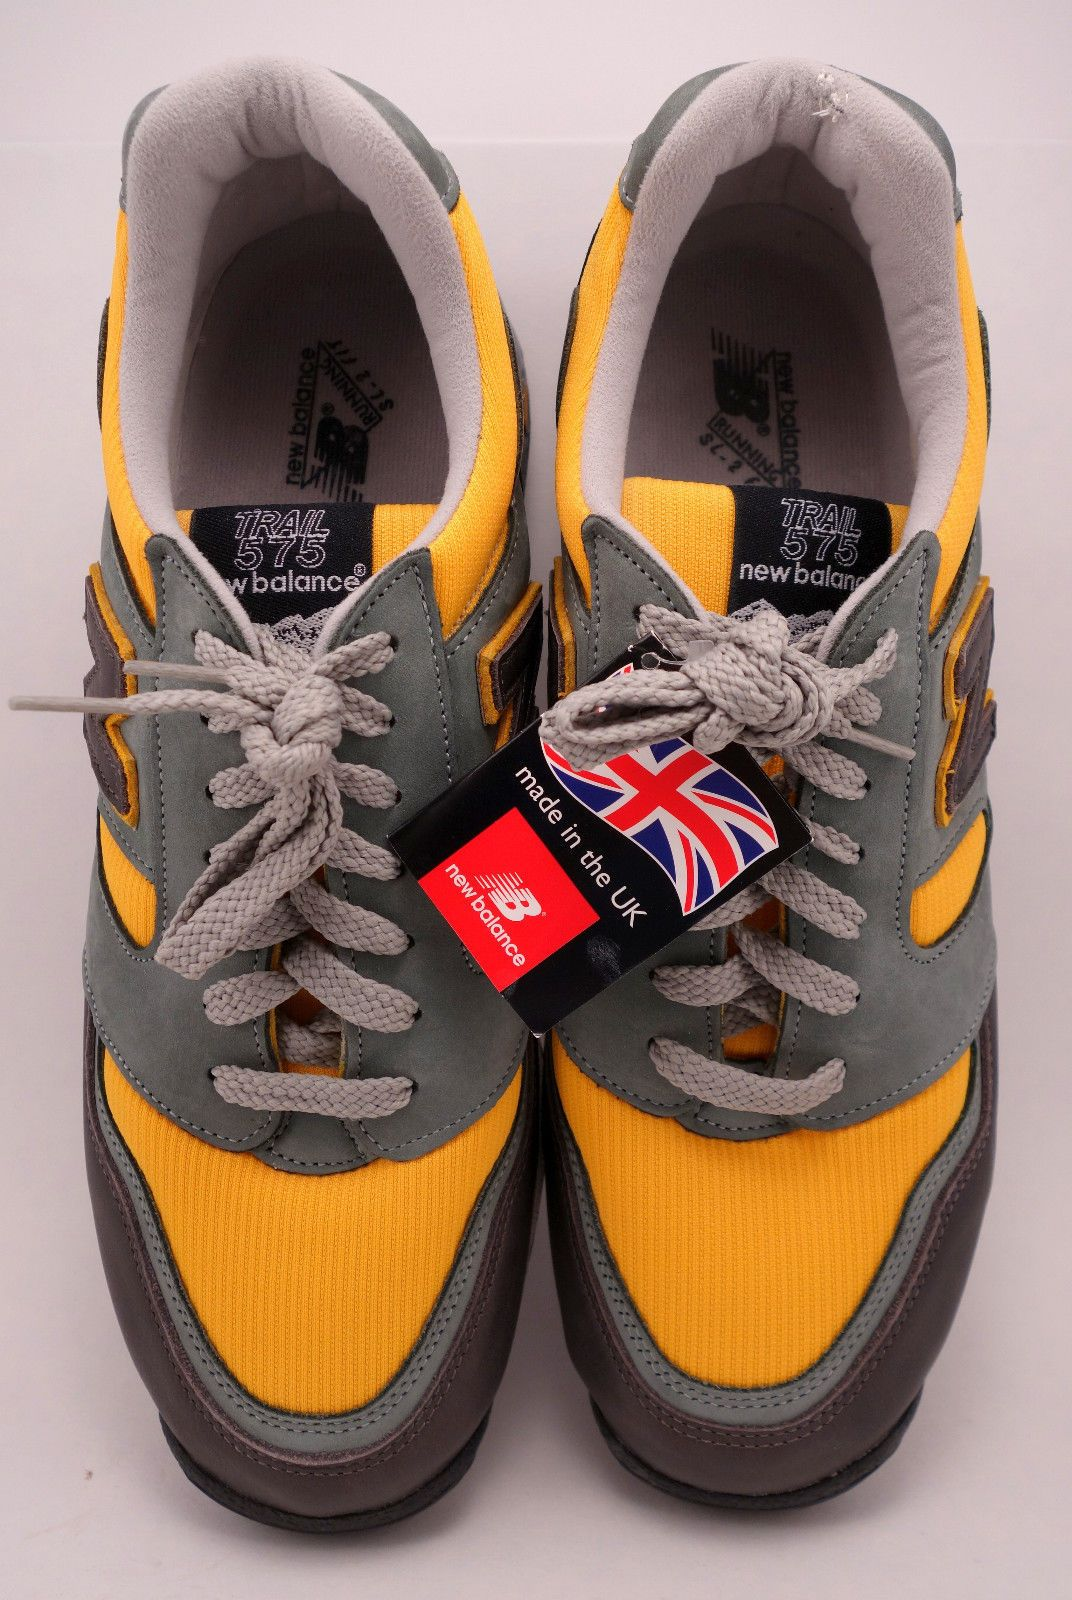 online store 17f50 d7d81 New Balance 575, M575GY, Gray Yellow, Size 11.5, Trails! New In Box MADE IN  U.K.